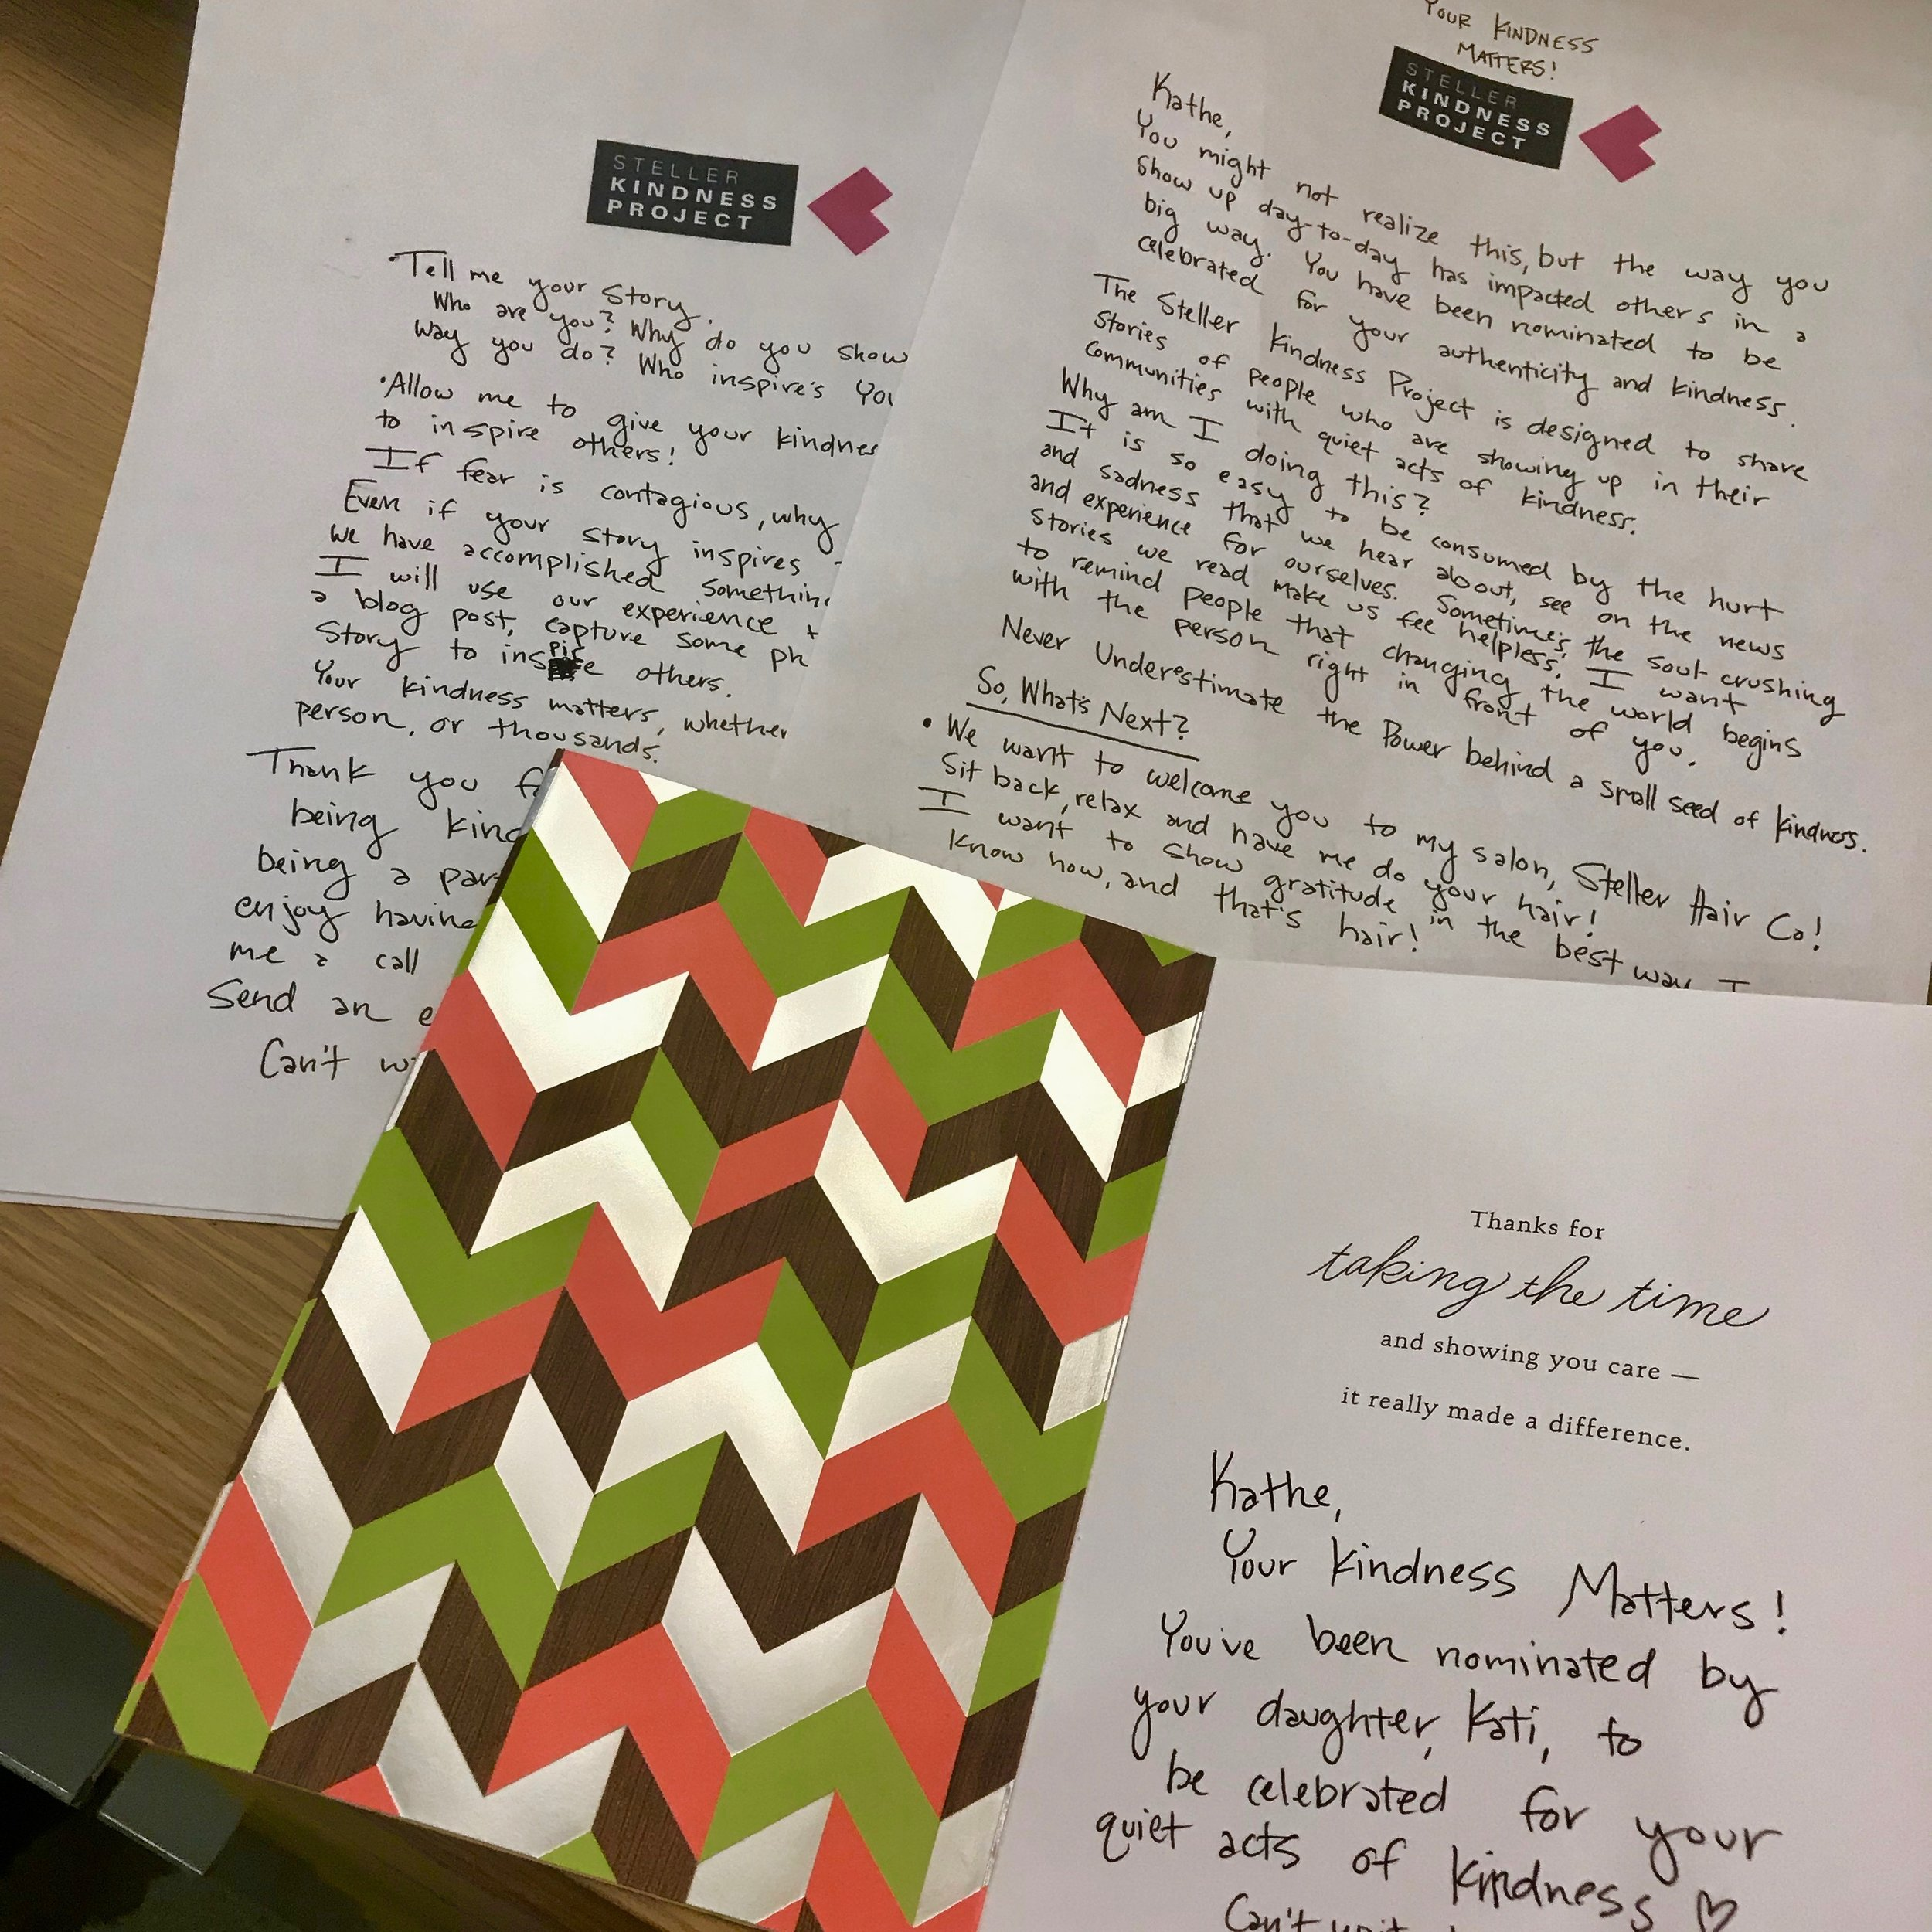 - Kathe was the first Kindness Project nominee that received her invitation via snail mail. Kati shared with me that her mom doesn't email, and appreciates handwritten correspondence.